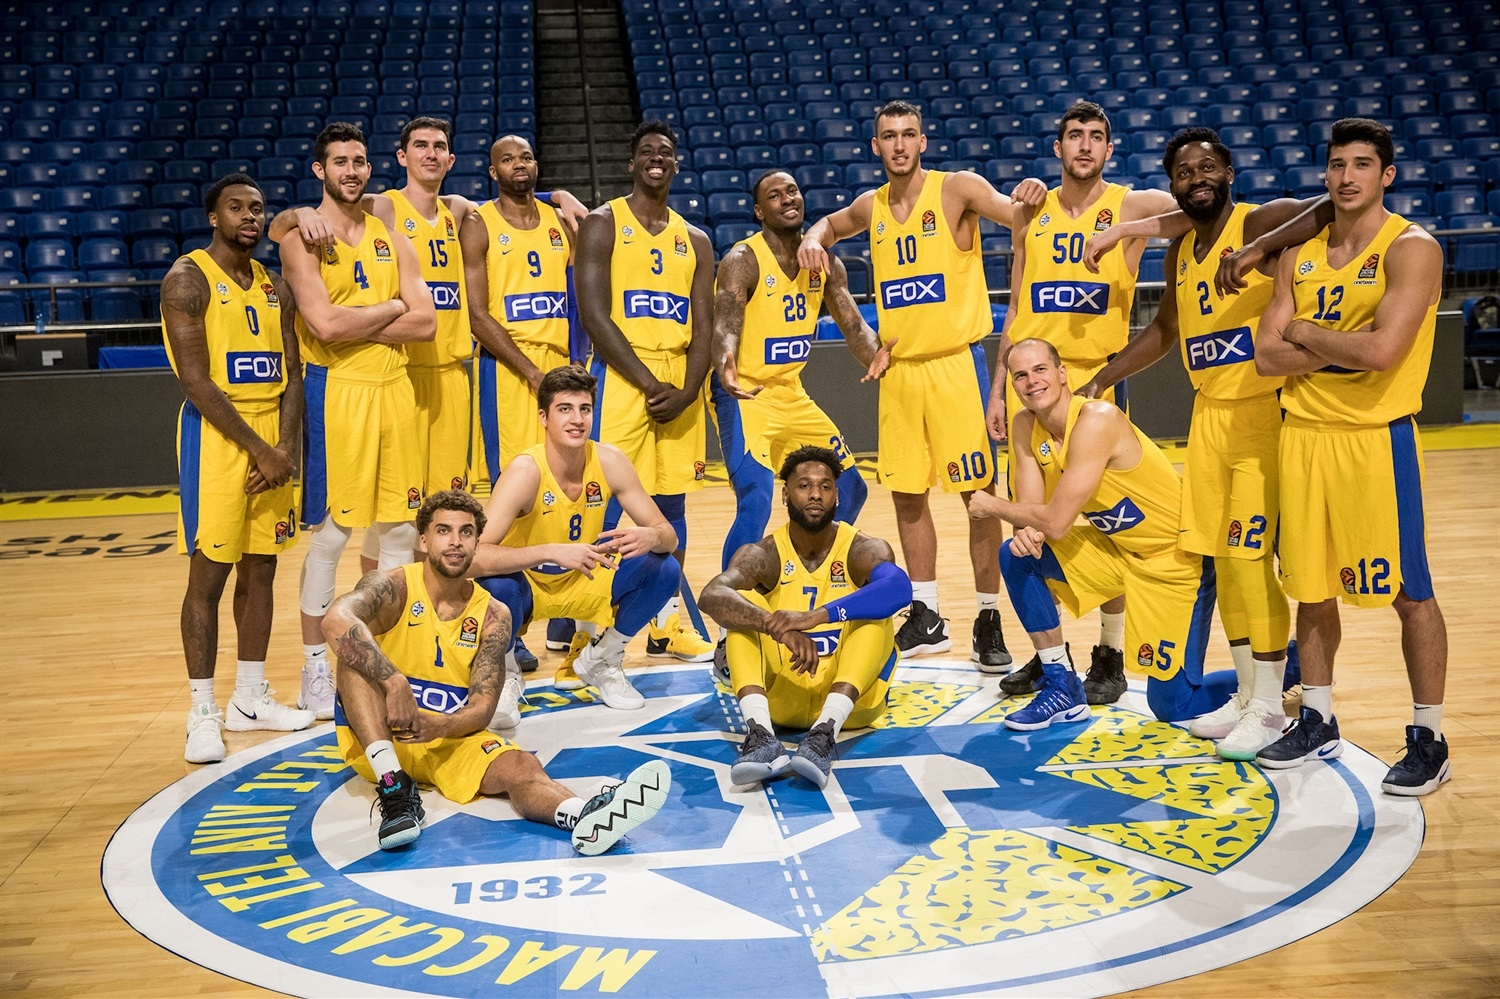 Maccabi FOX Tel Aviv Media Day 2018 - EB18